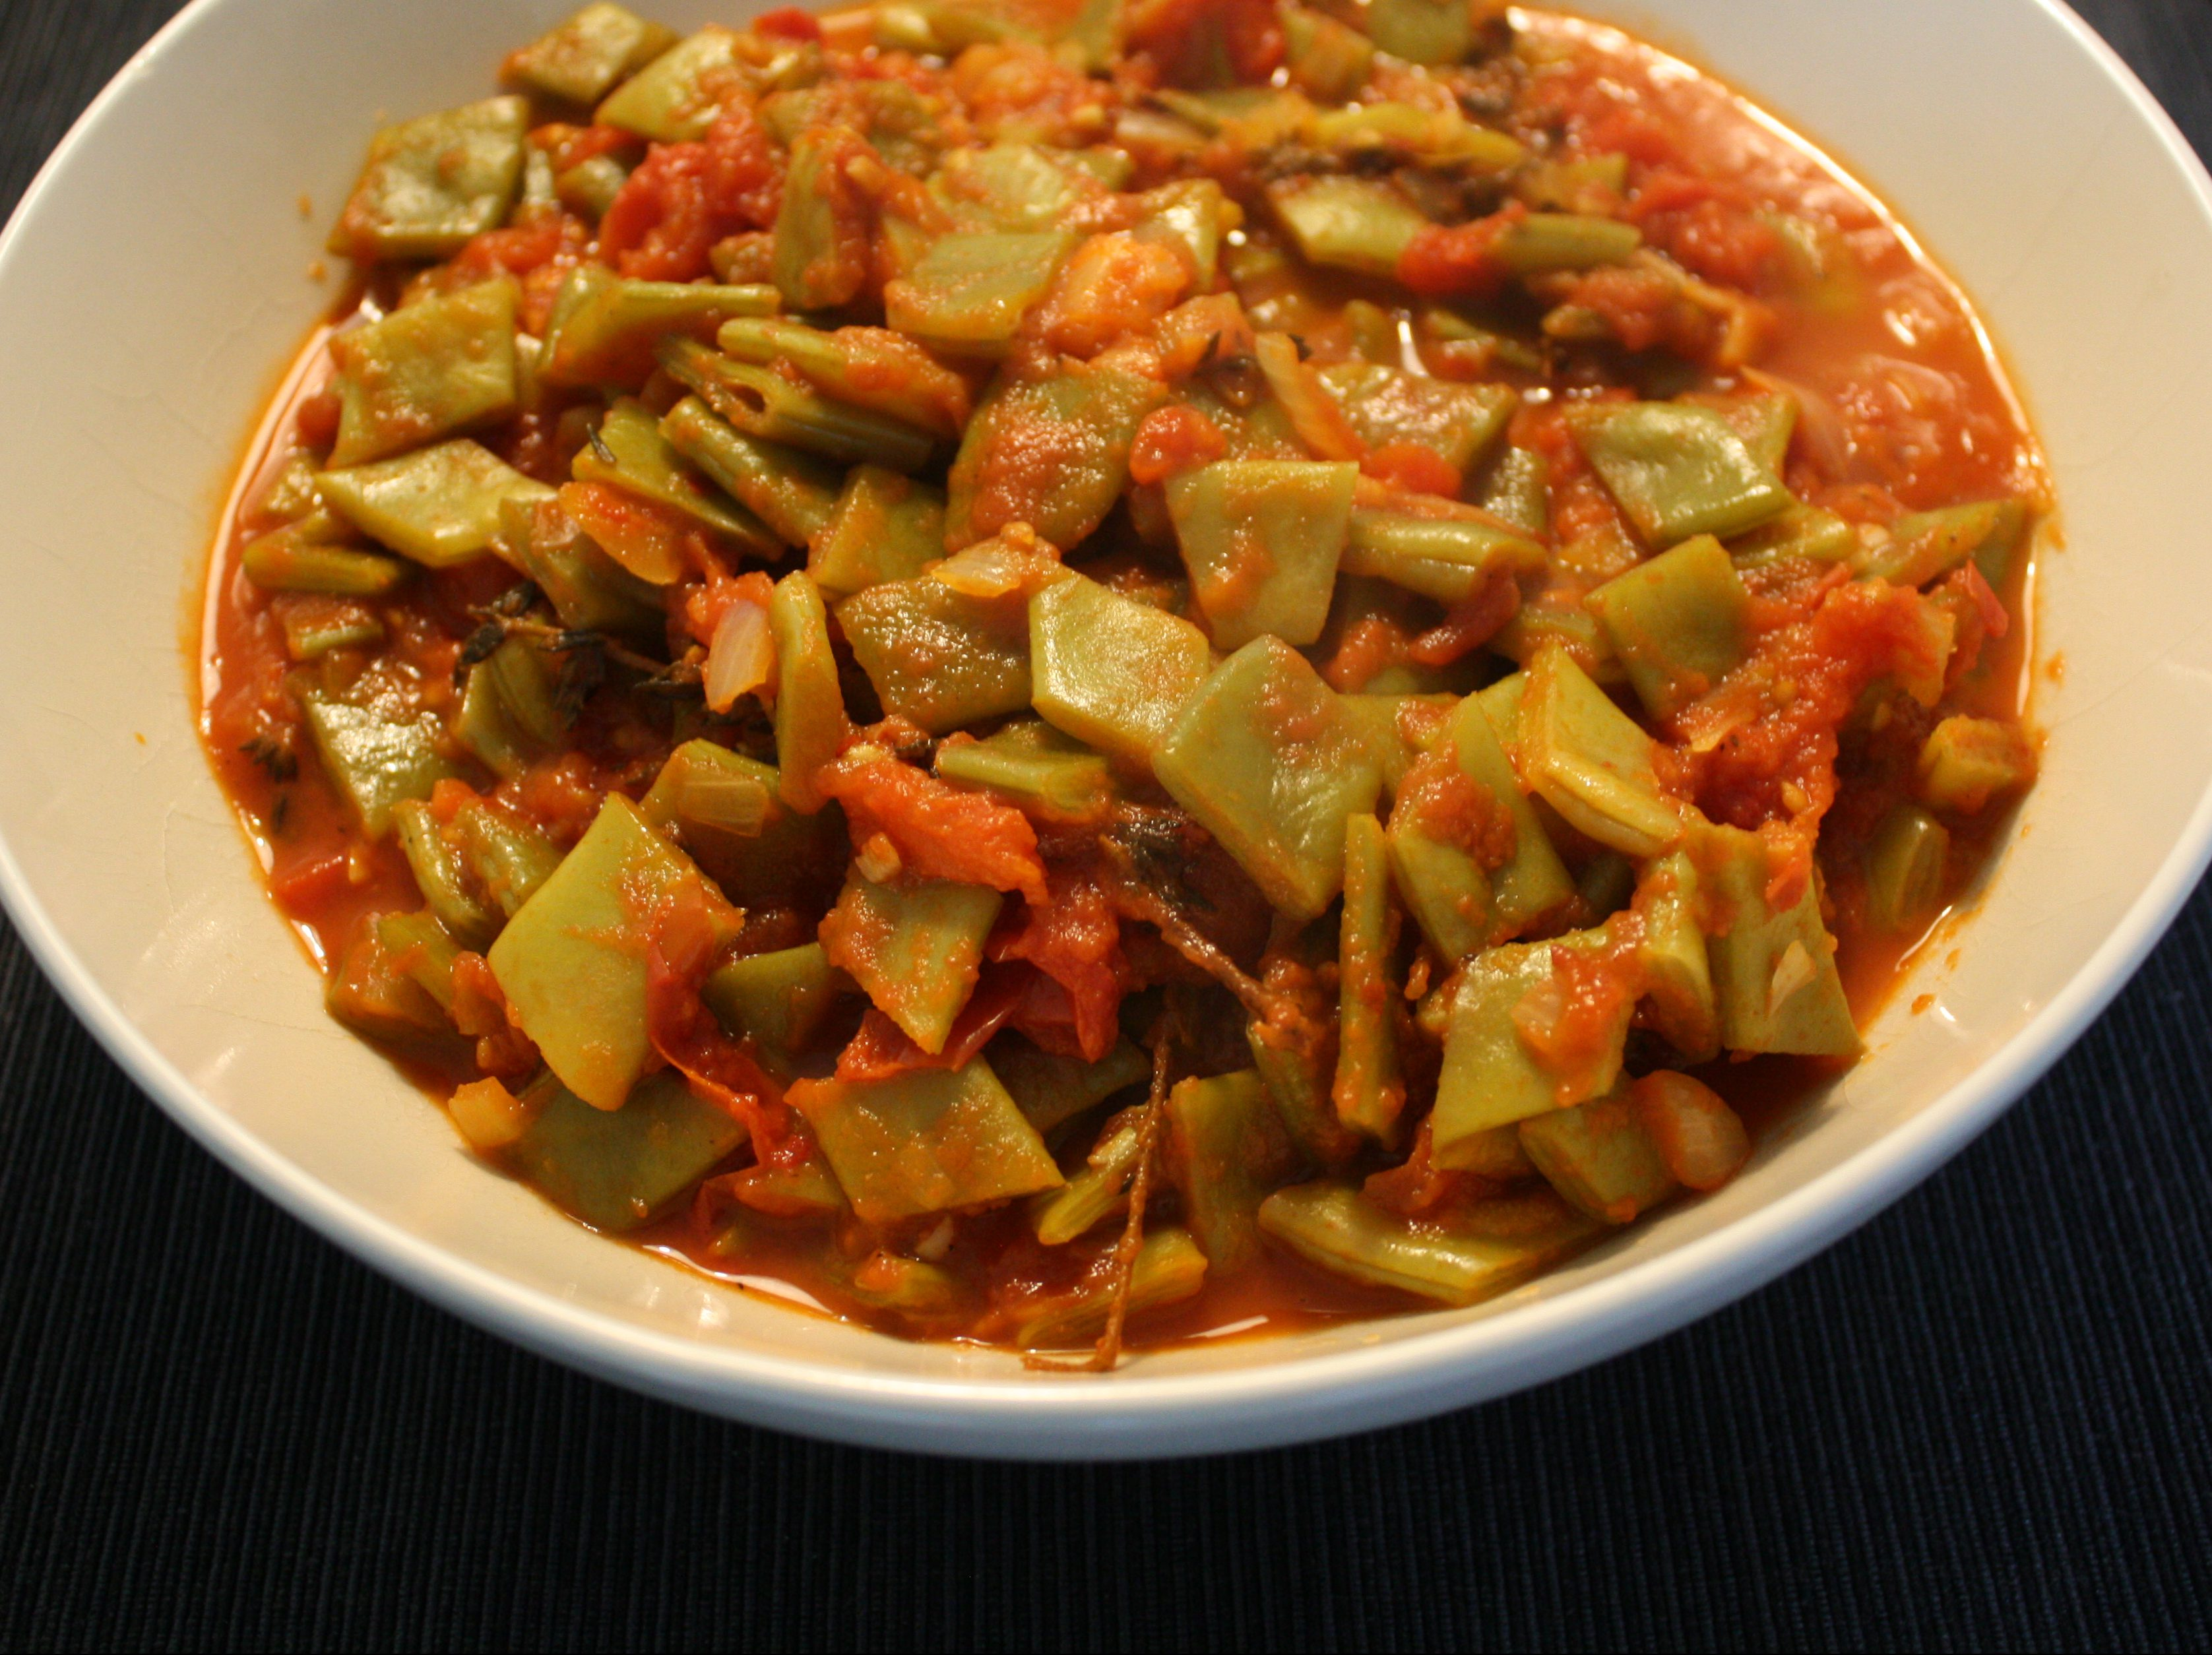 Spicy string beans in tomato sauce